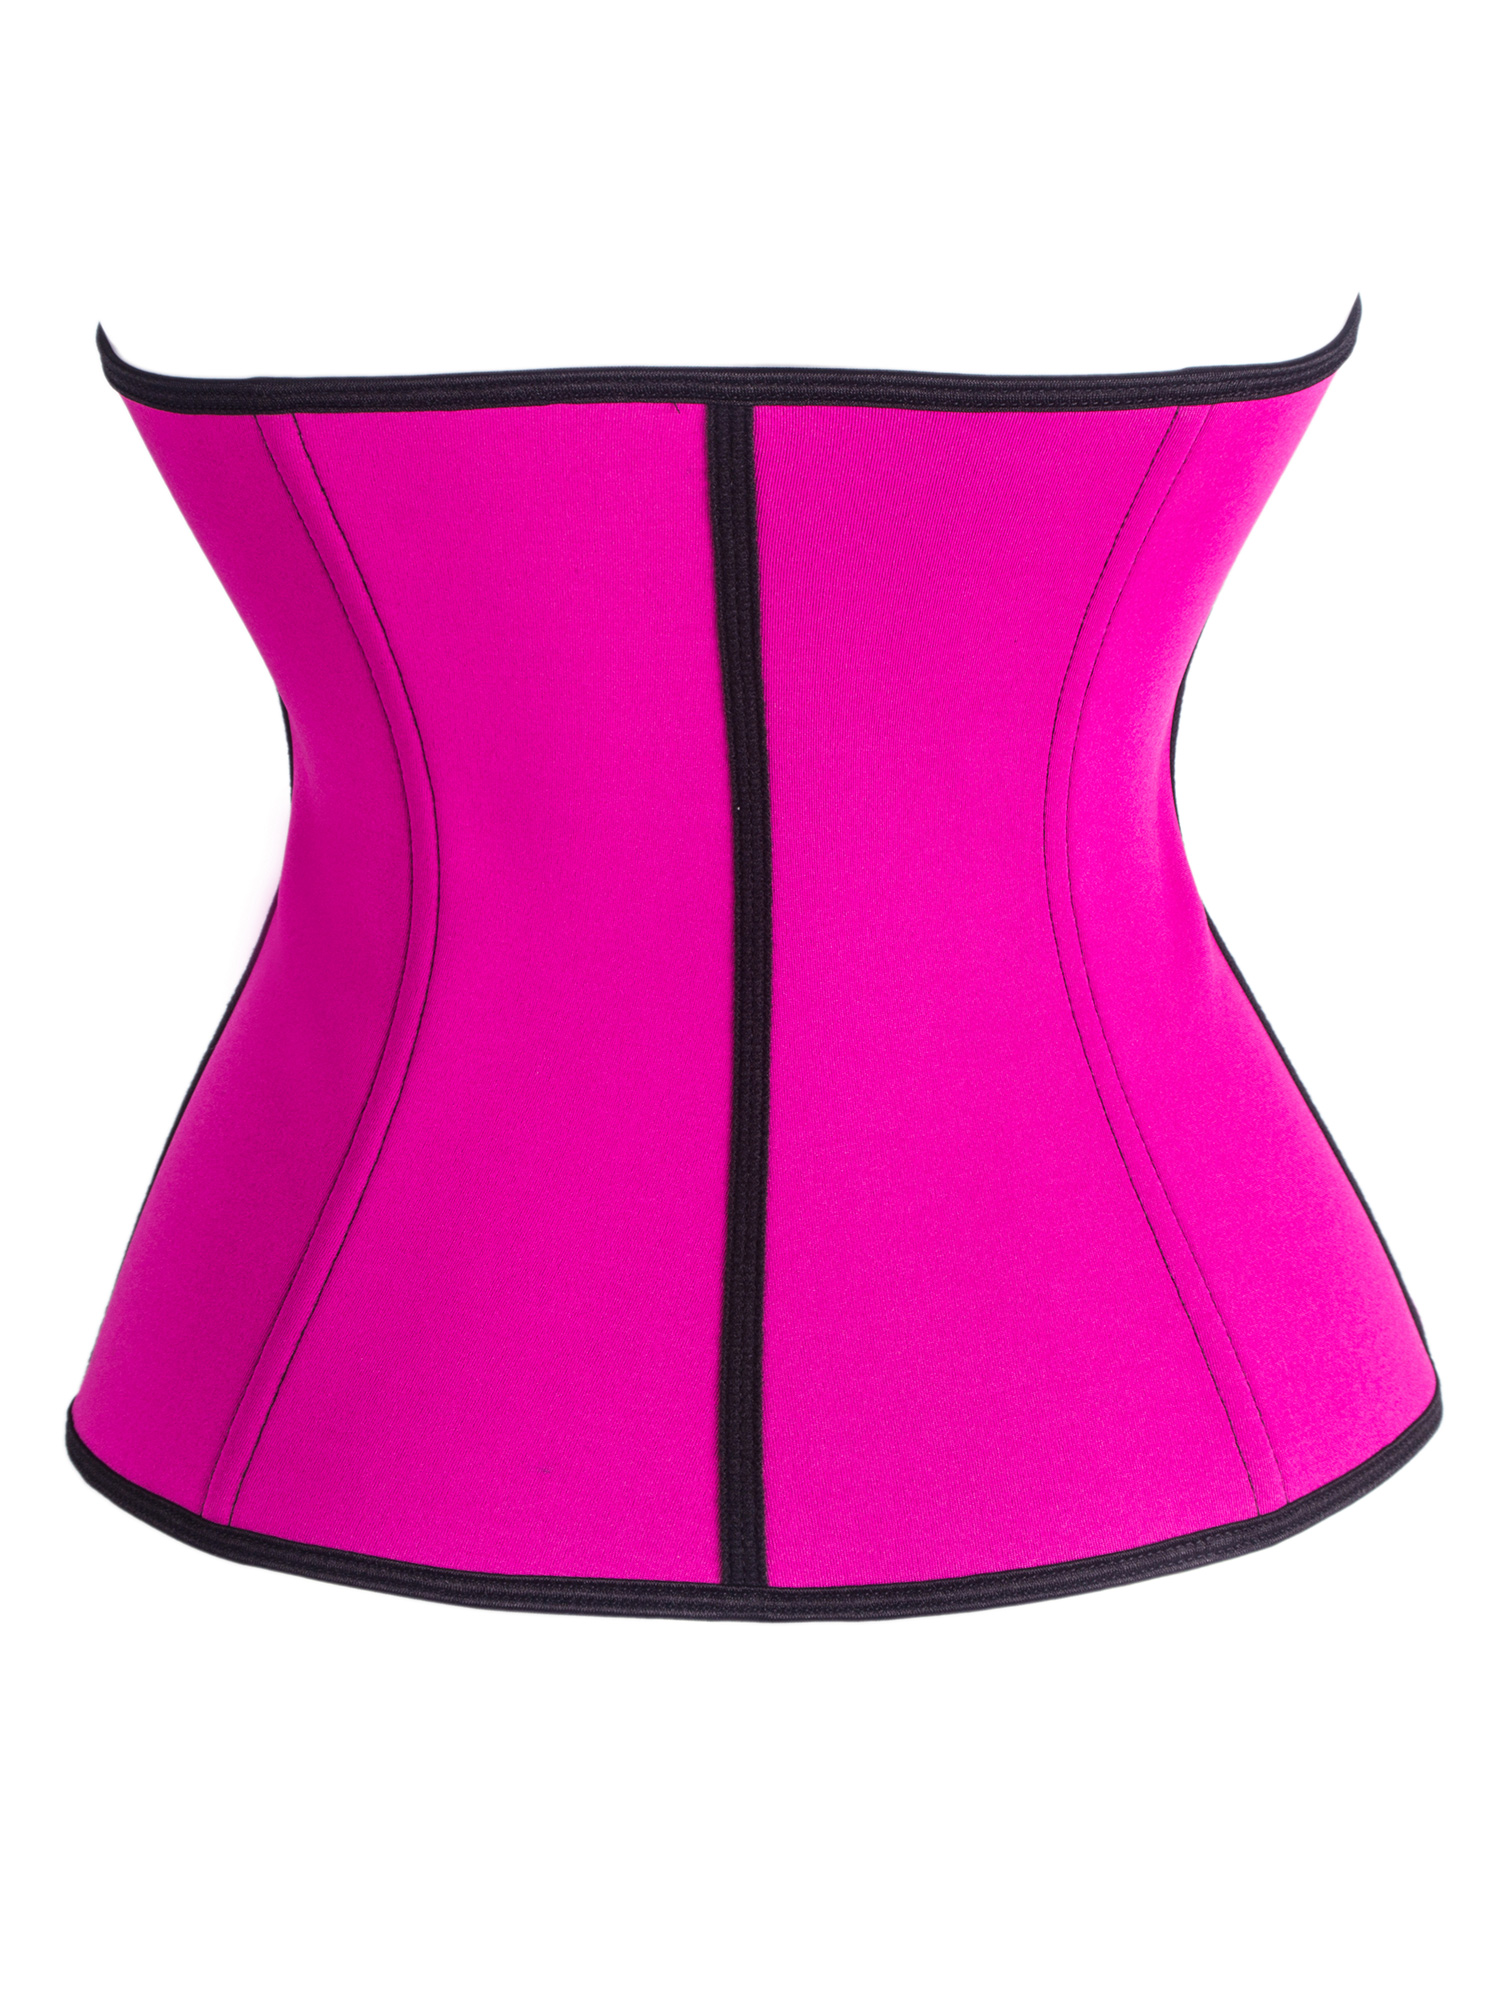 5f797c39b8eea Lelinta - Waist Trainer Corset Vest Shapewear Adjustable Elastic Waist  Trainer for Women Weight Loss Body Shaper - Walmart.com